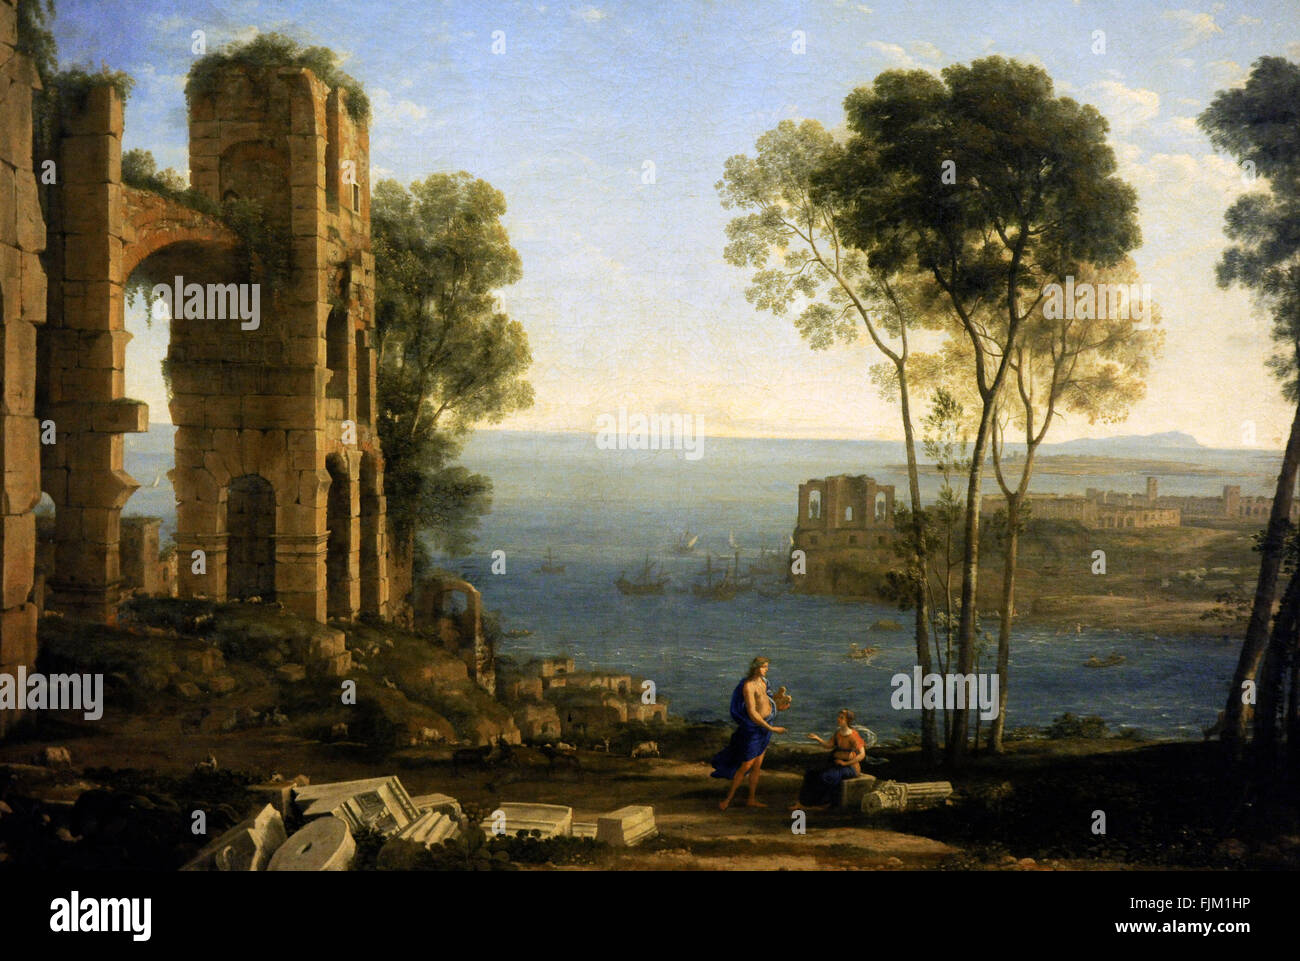 Claude Gellee called Le Lorrain (1600-1682). French painter. Coast view with Apollo and the Cumaean Sibyl, 1645 - Stock Image